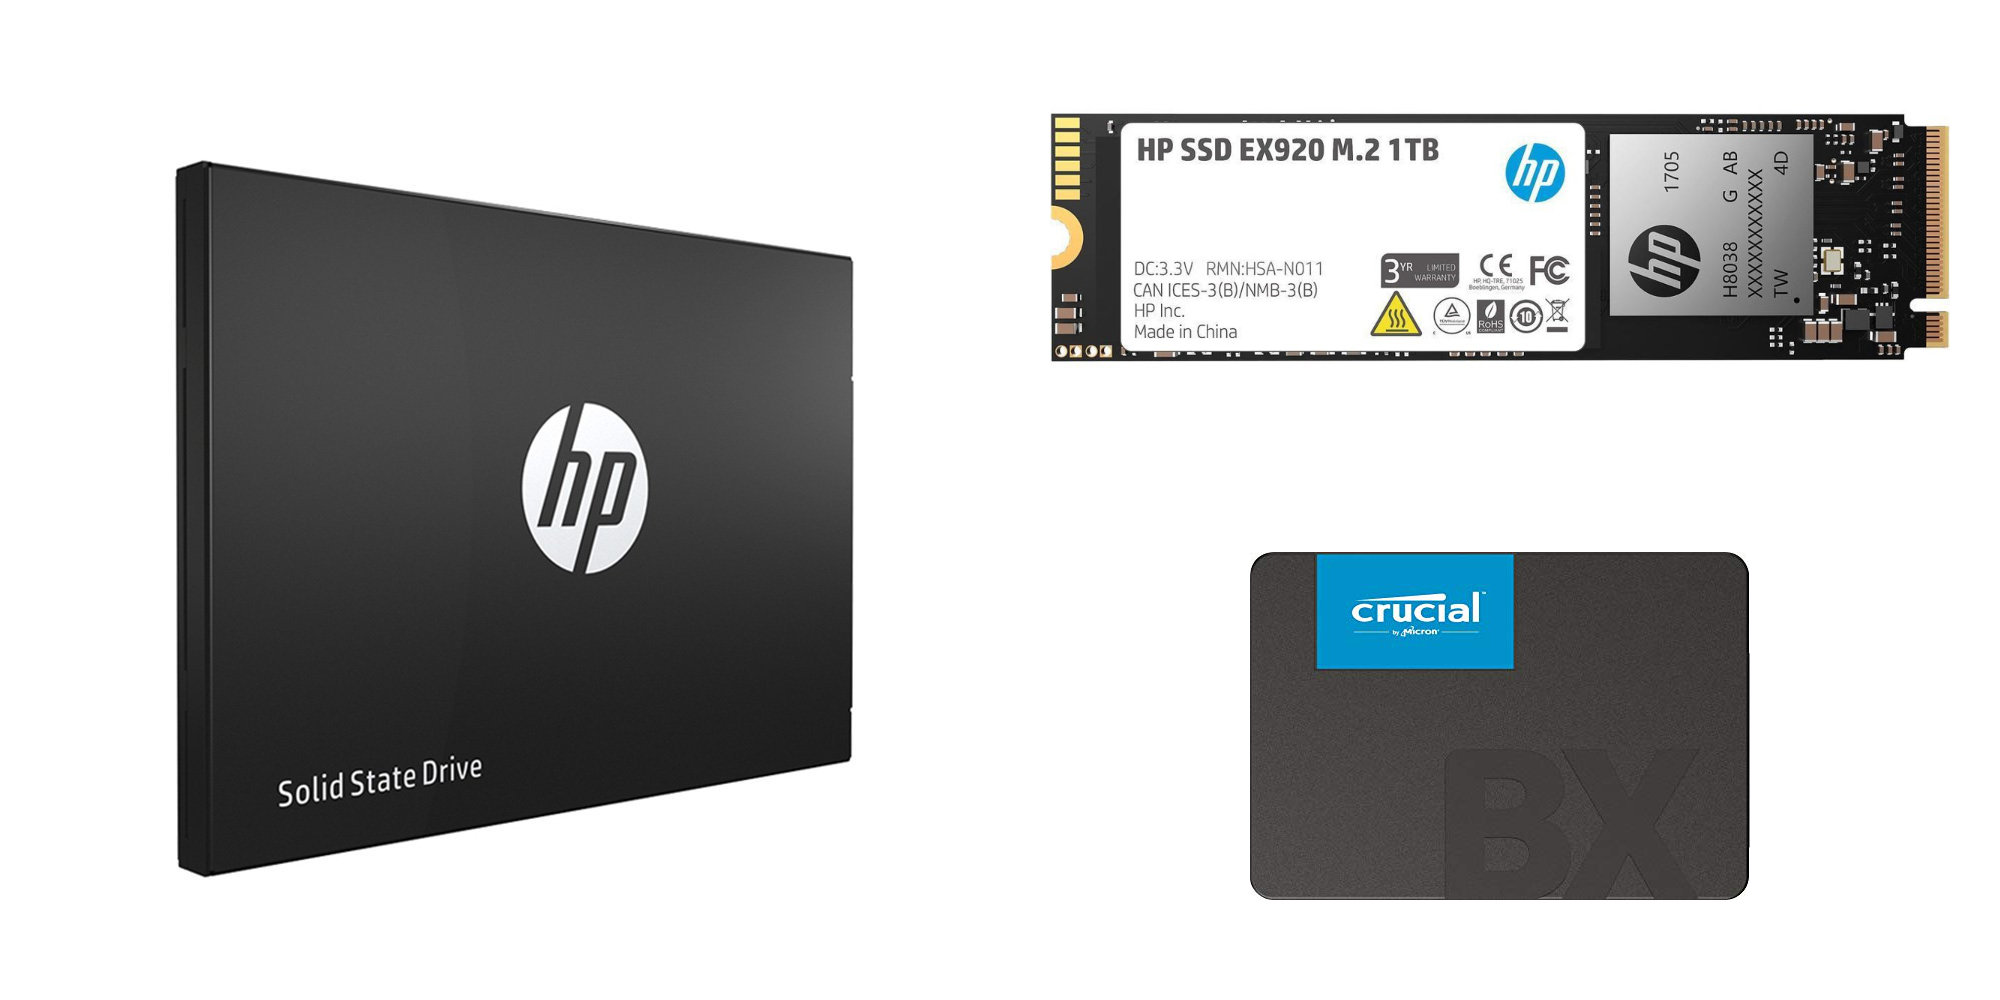 Snag HP's all-metal 500GB Pro SSD for $58 (Reg. $75), Crucial 240GB $30, more